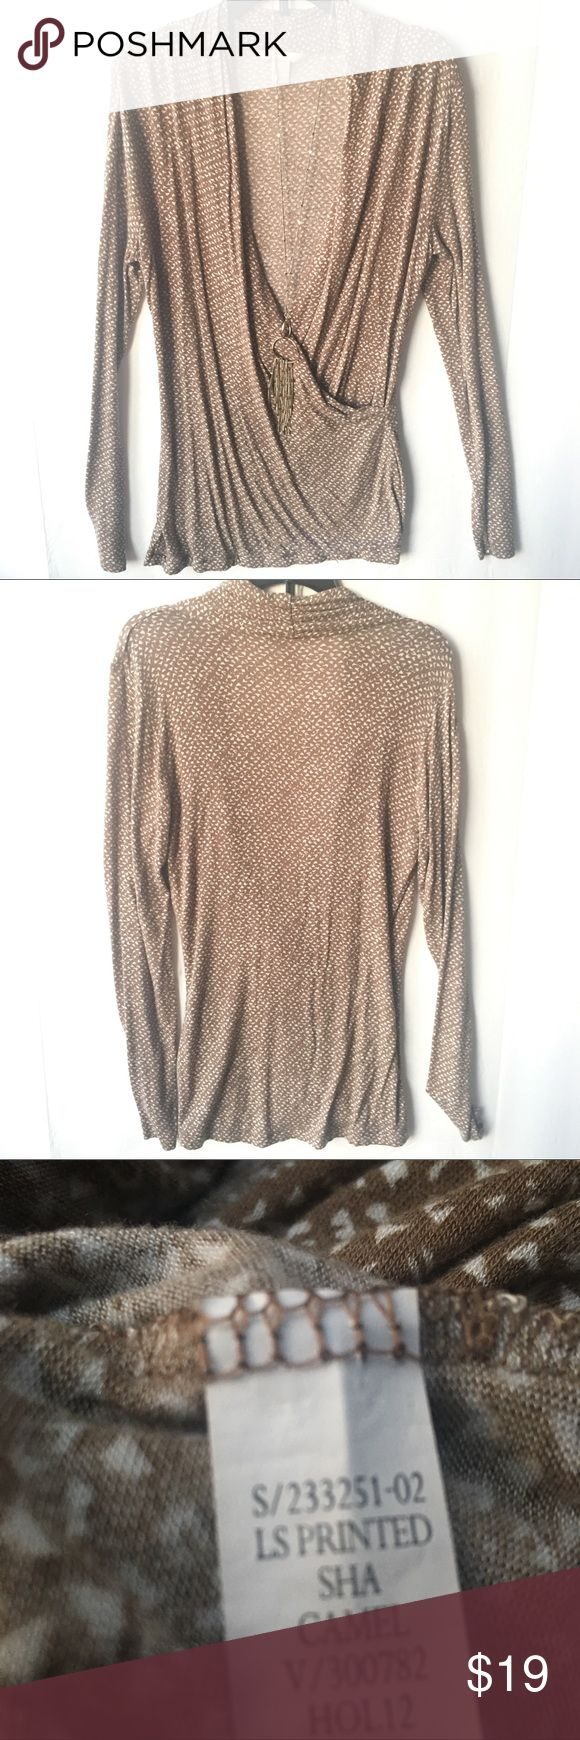 """Banana Republic Long Sleeve Wrap Front Top Soft and stretchy!  So soft you want to sleep in it. Banana Republic makes such classic designs that never become dated. This wrap-effect top drapes in front. Can be worn alone or with a cami.  Has been worn twice at the most and in excellent condition. Approximate length from shoulder to hem is 28"""".   Color: camel Size: S 95% modal (rayon) 5% spandex Banana Republic Tops"""